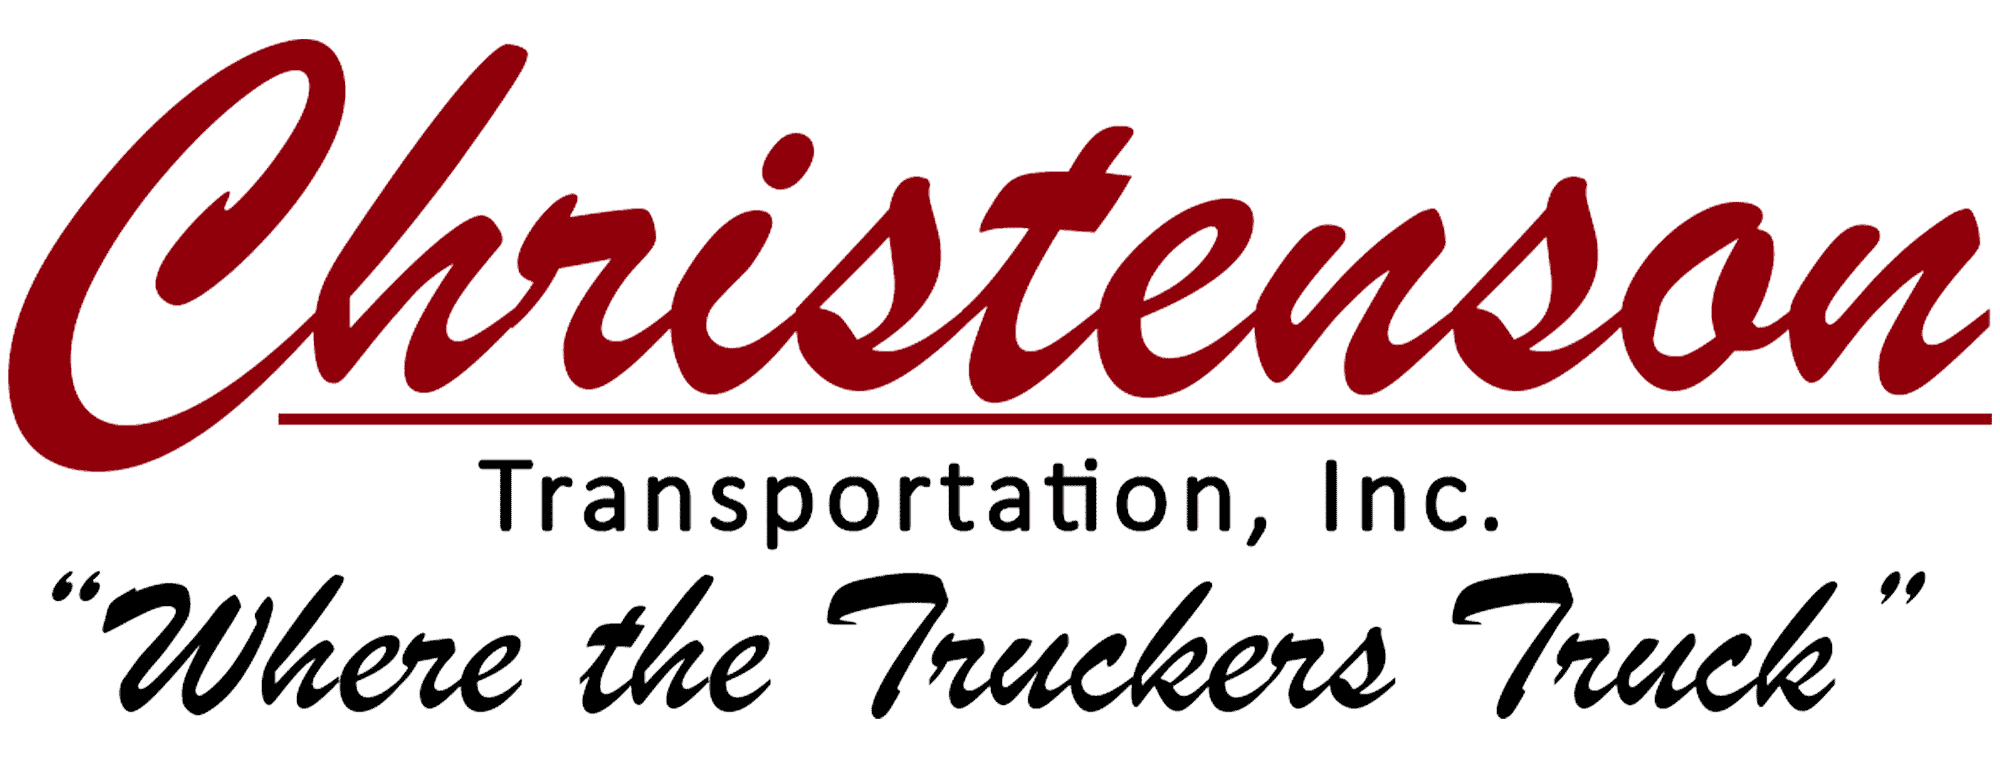 Christensen Transportation